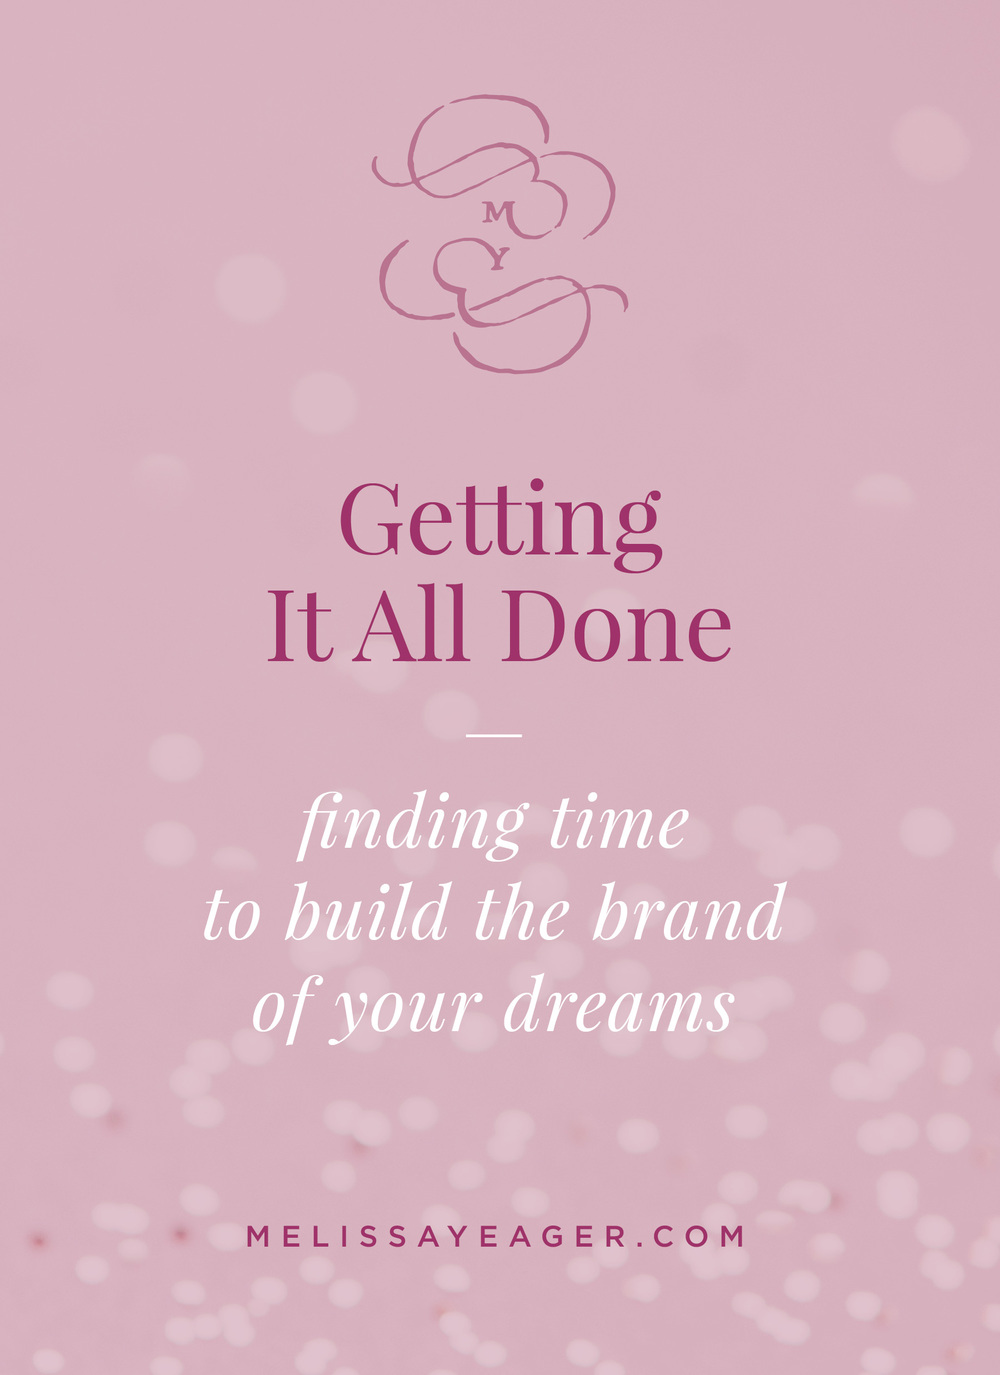 Getting It All Done: finding the time to build the brand of your dreams